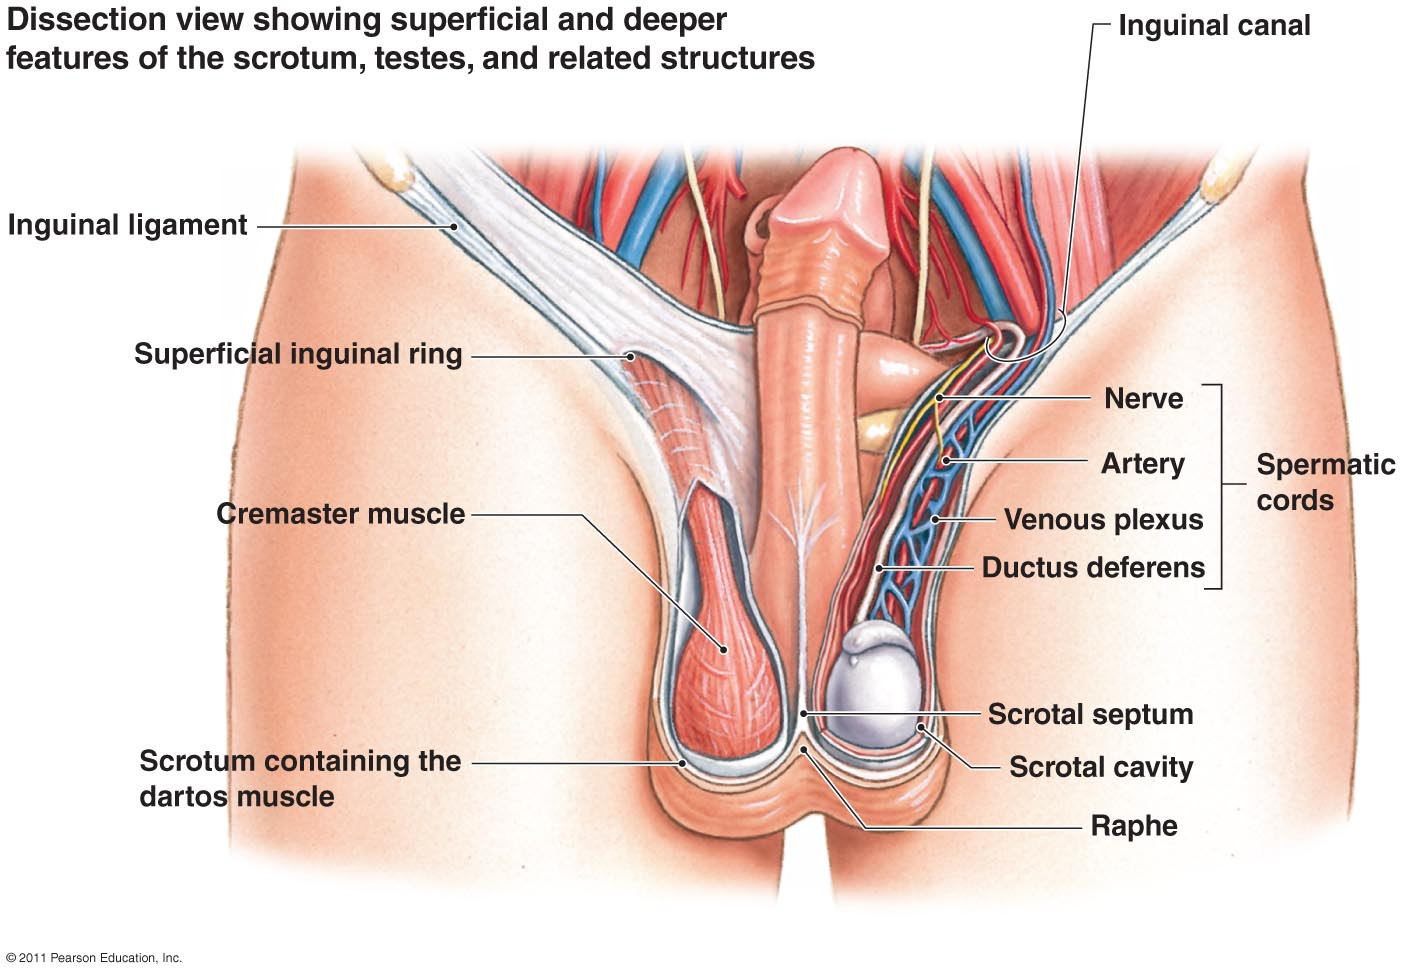 Dissection view of superficial and deeper features of the scrotum, testes, and related structure